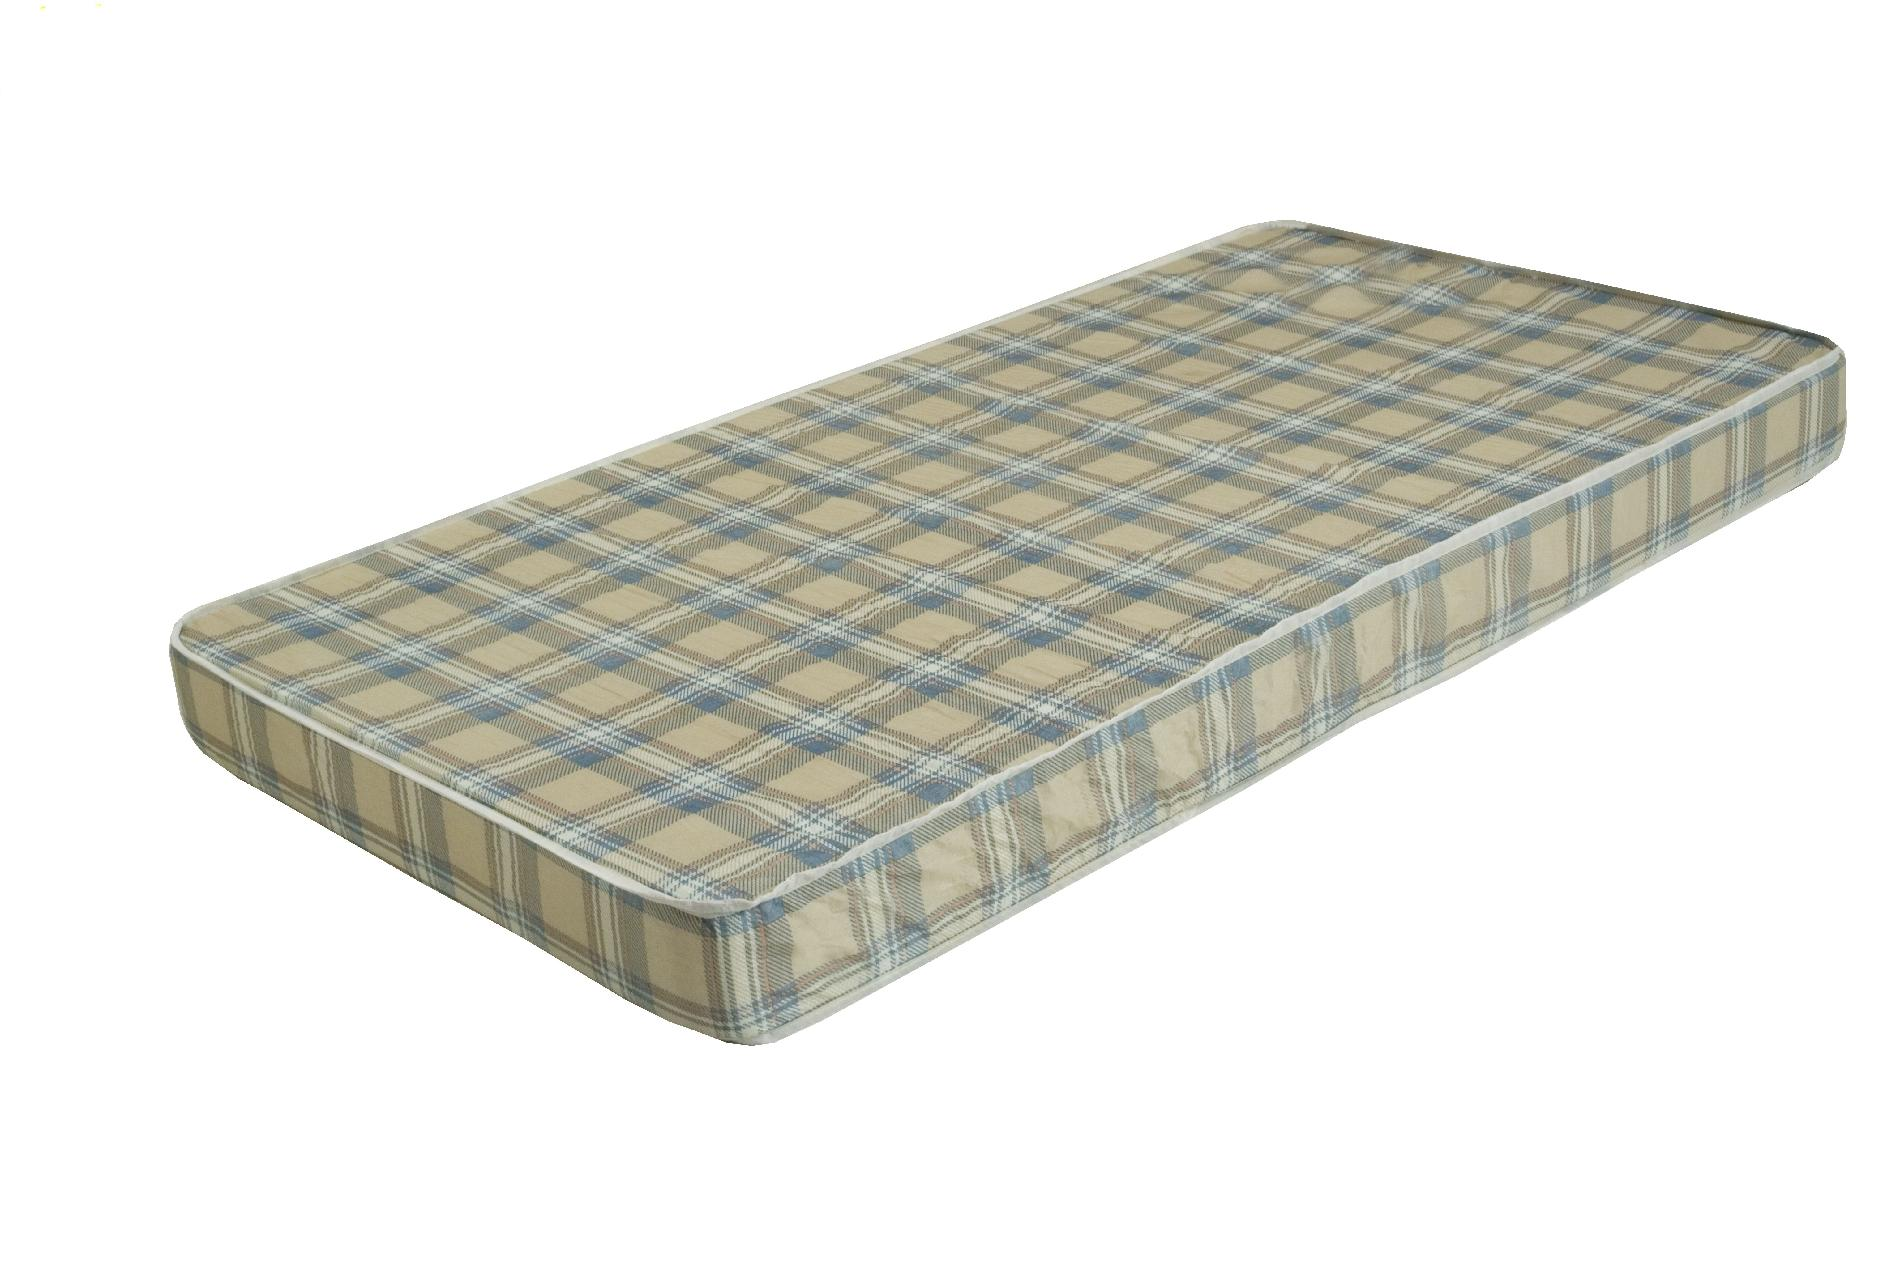 Innerspace Luxury Products Bunk Bed / Dorm Mattress - Twin